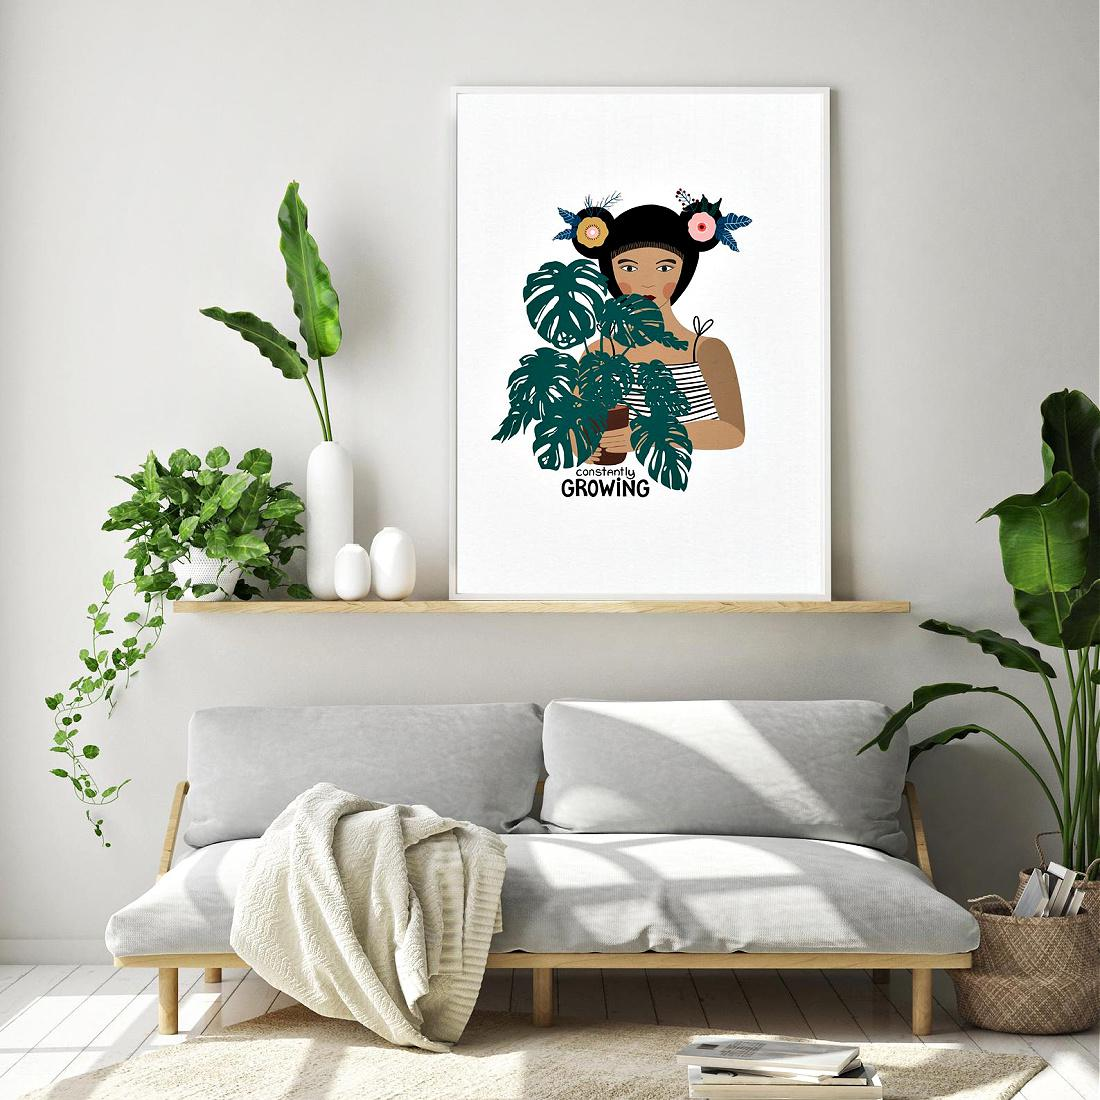 Constantly Growing Art Print